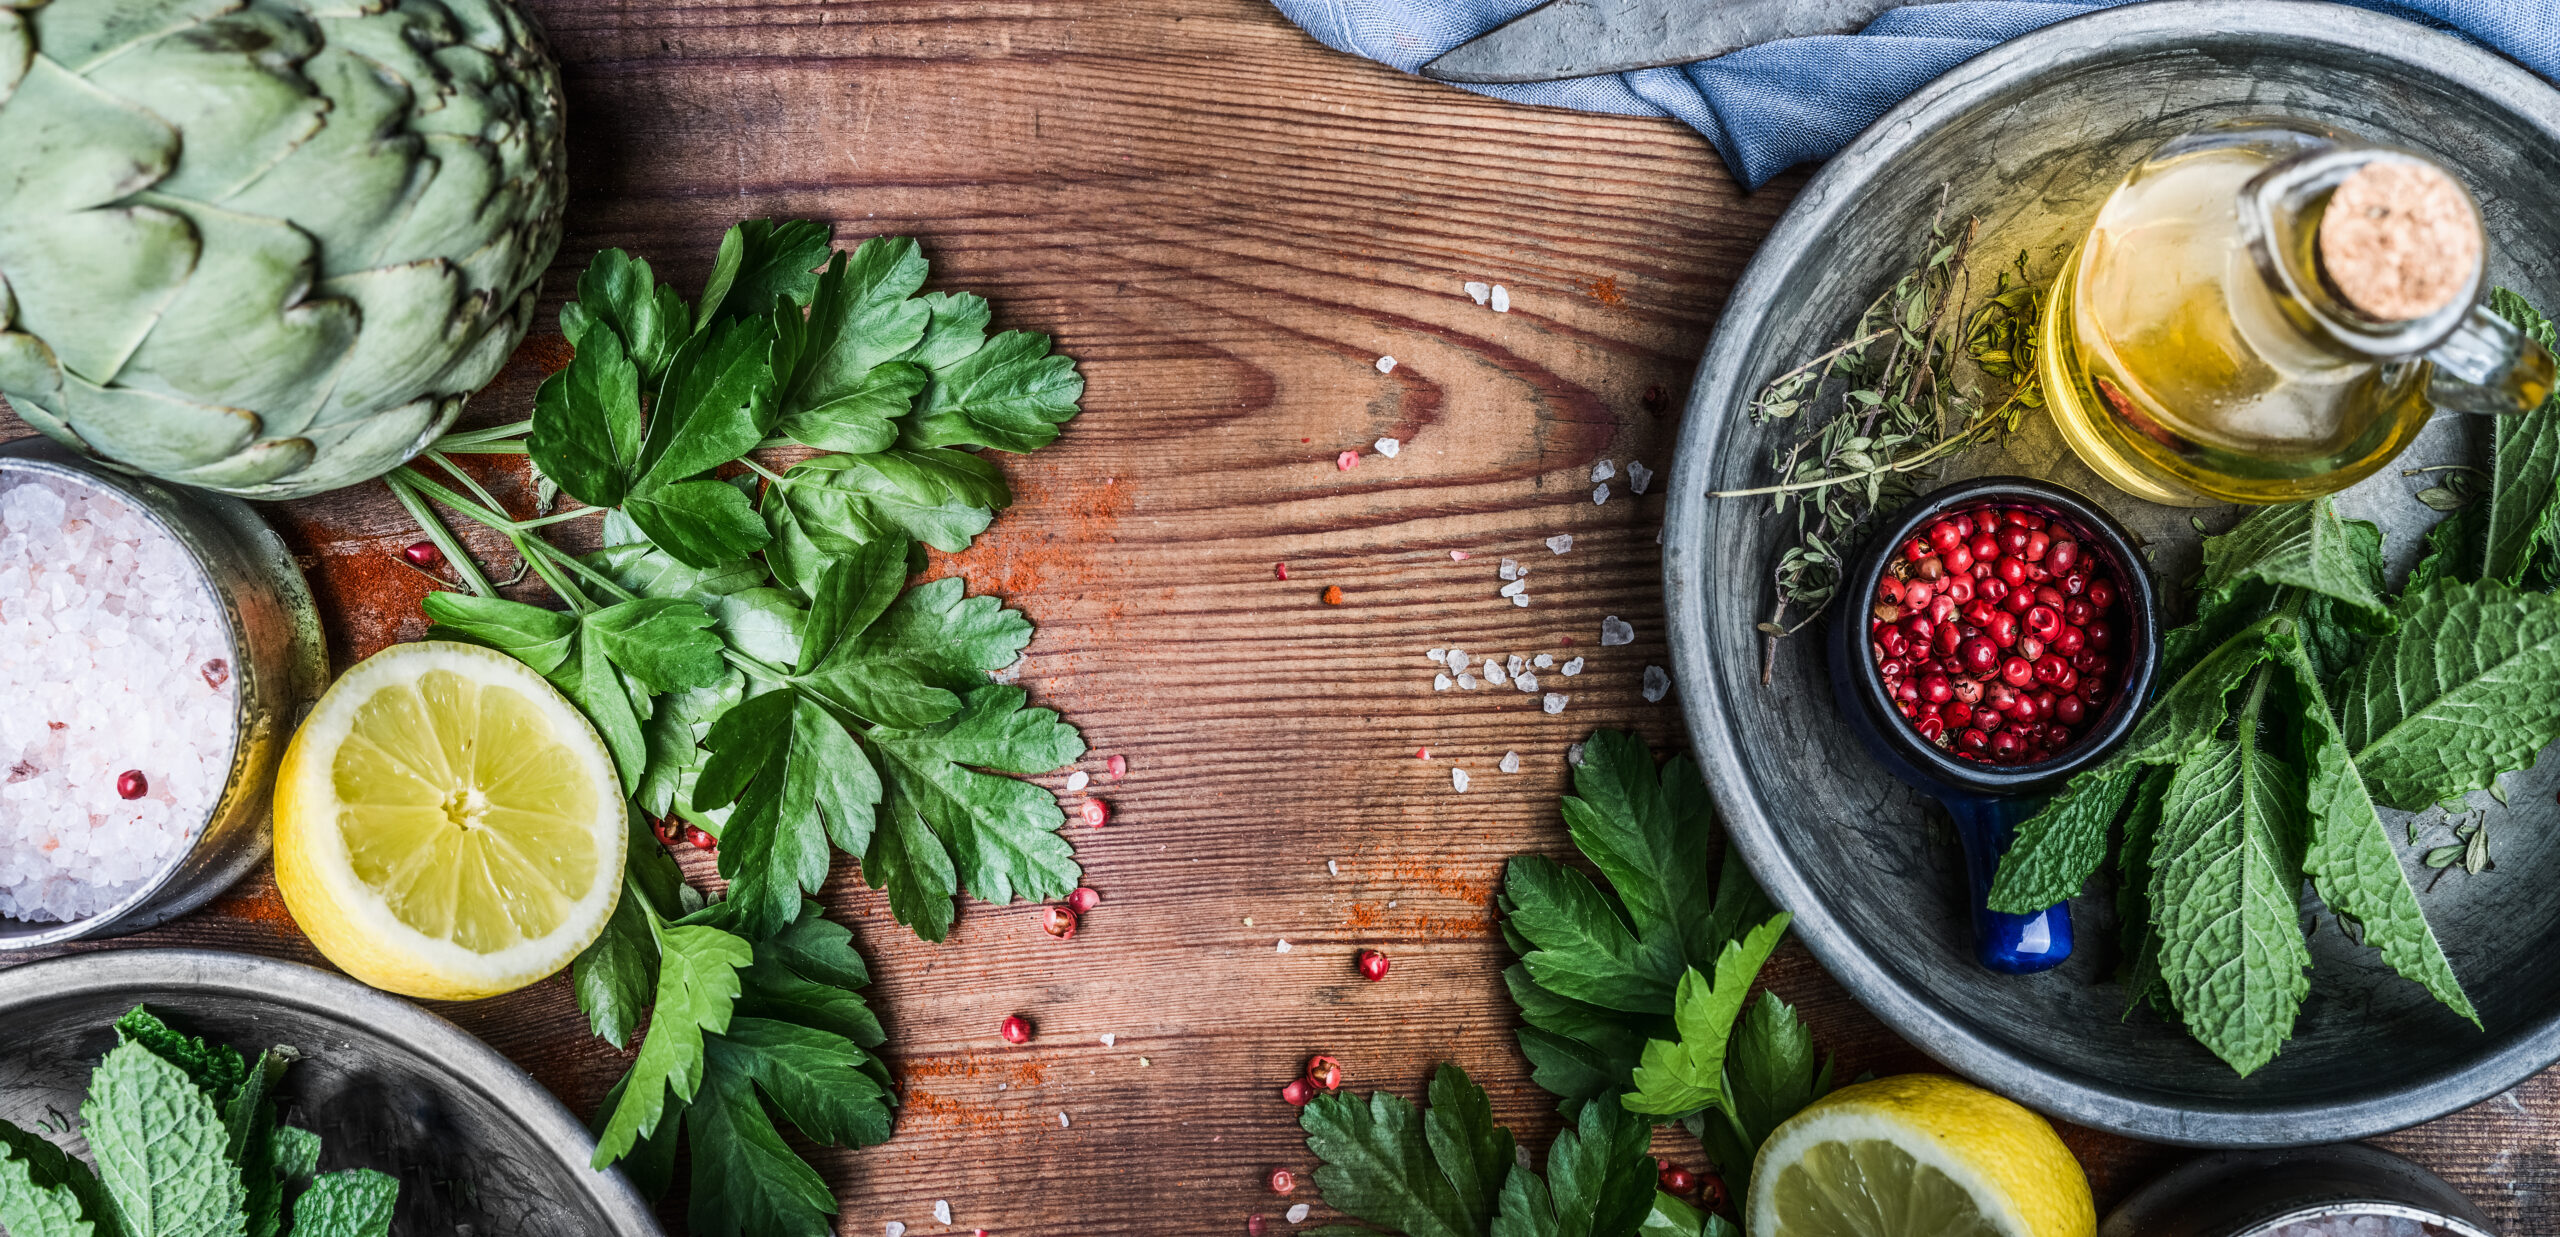 Healthy eating and cooking with fresh organic ingredients. Herbs,spices and olives oil on rustic wooden background, top view, banner